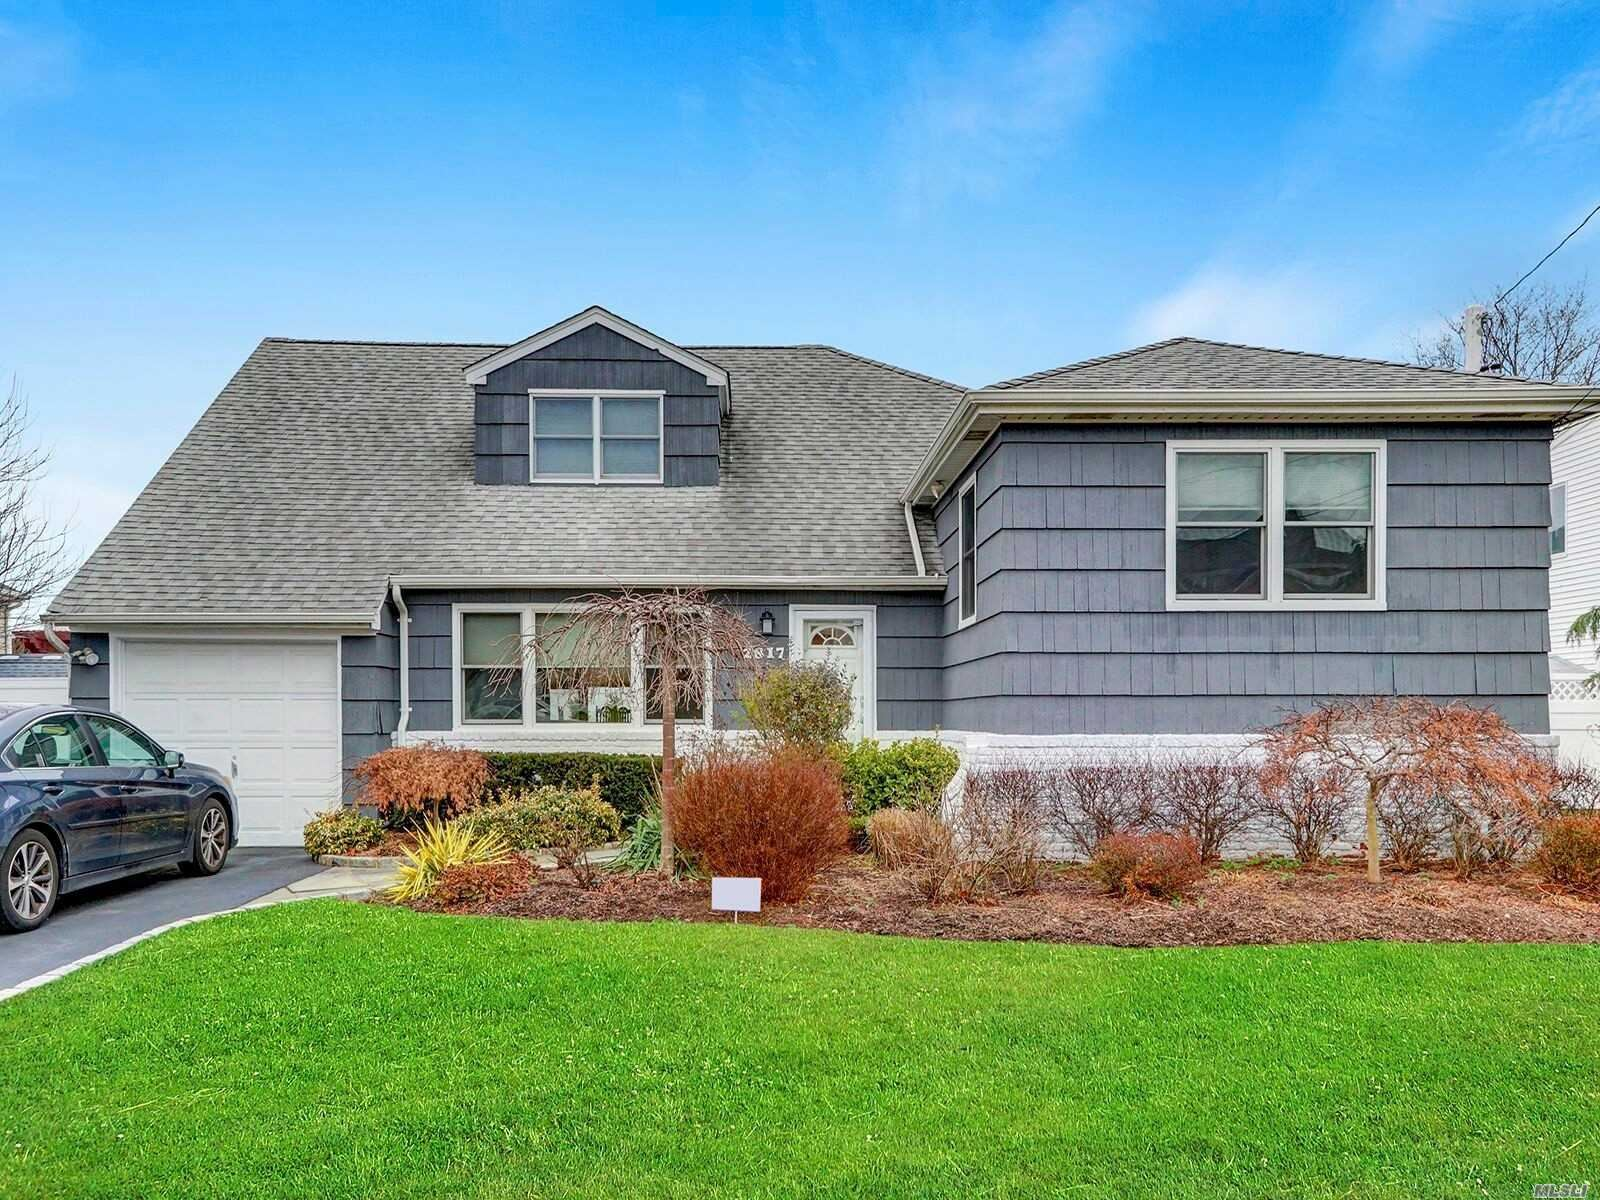 2817 Lindenmere Drive, Merrick, NY 11566 - MLS#: 3190323